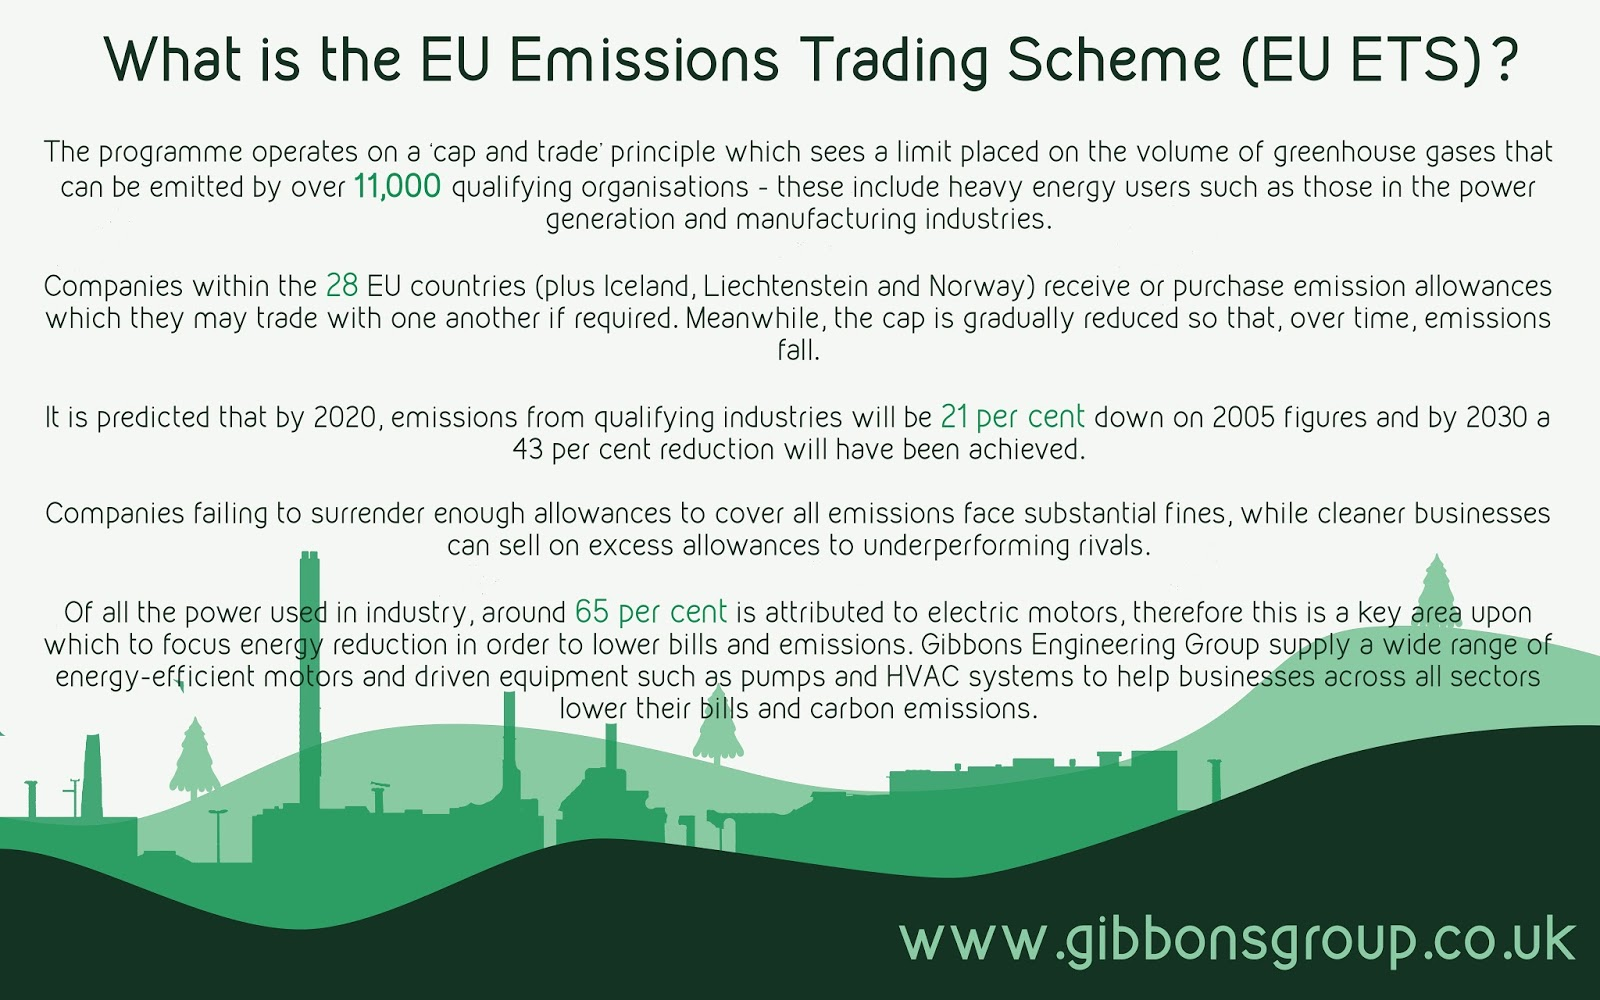 Emissions trading scheme and globalisation essay